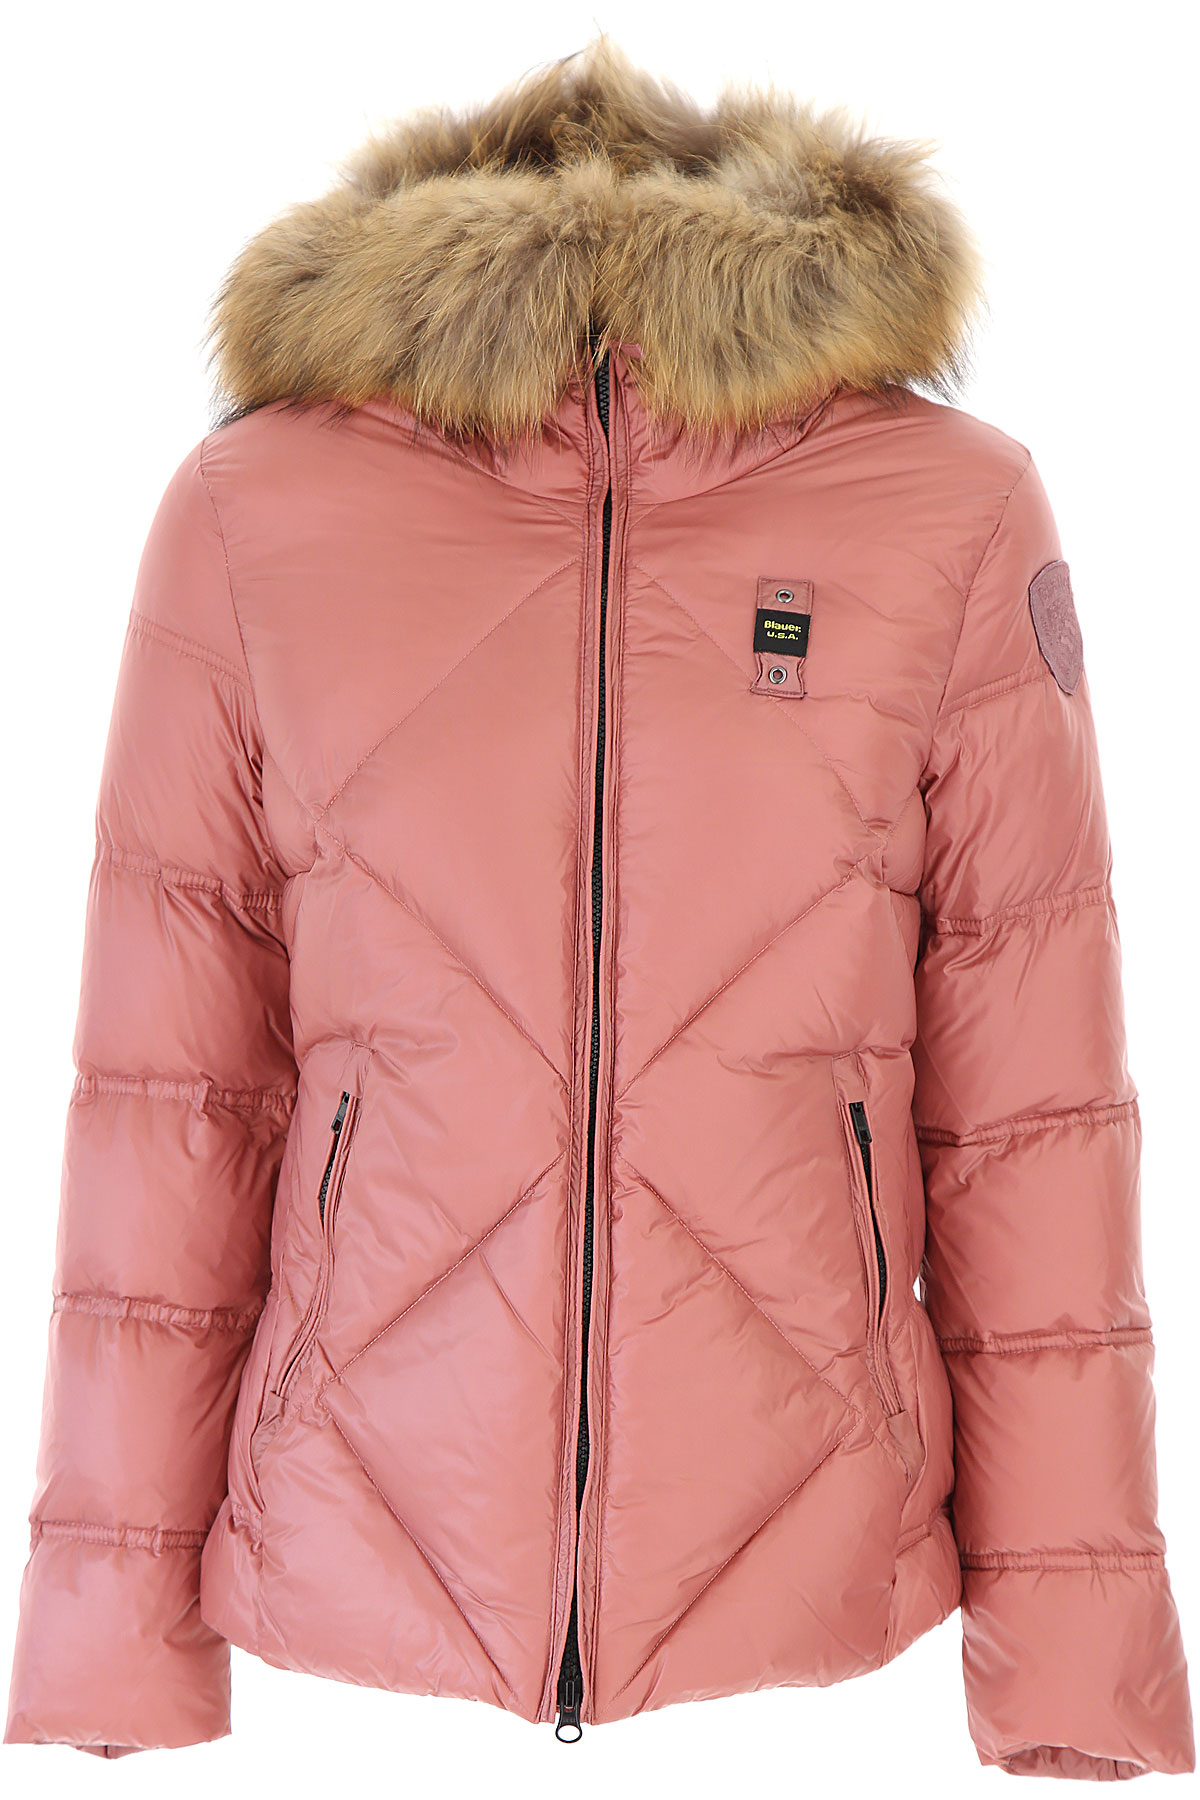 Blauer Down Jacket for Women, Puffer Ski Jacket On Sale, Bright Salmon, polyester, 2019, 2 4 6 8